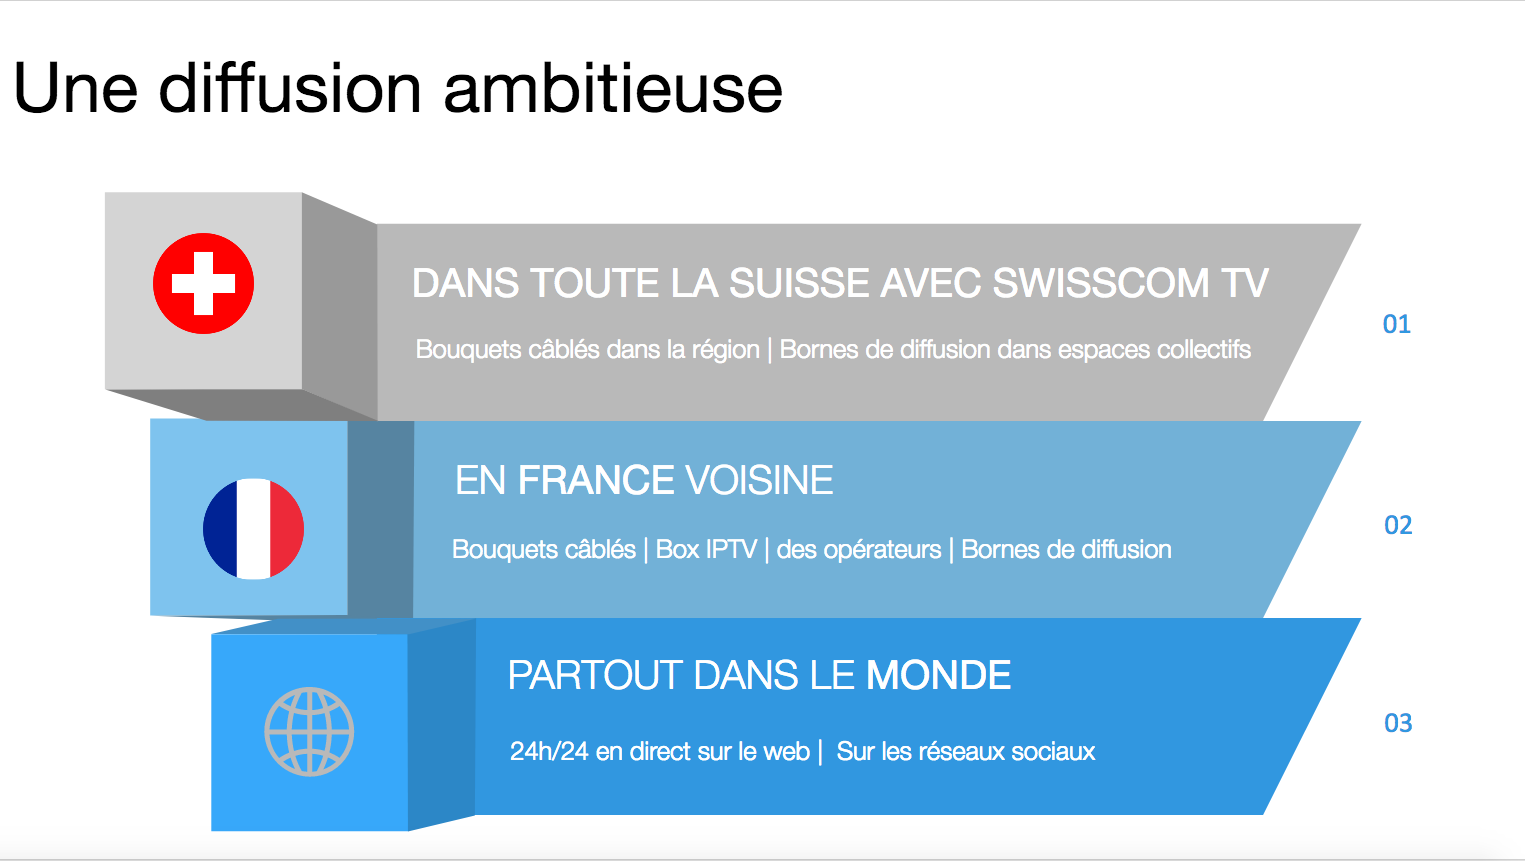 Une diffusion ambitieuse